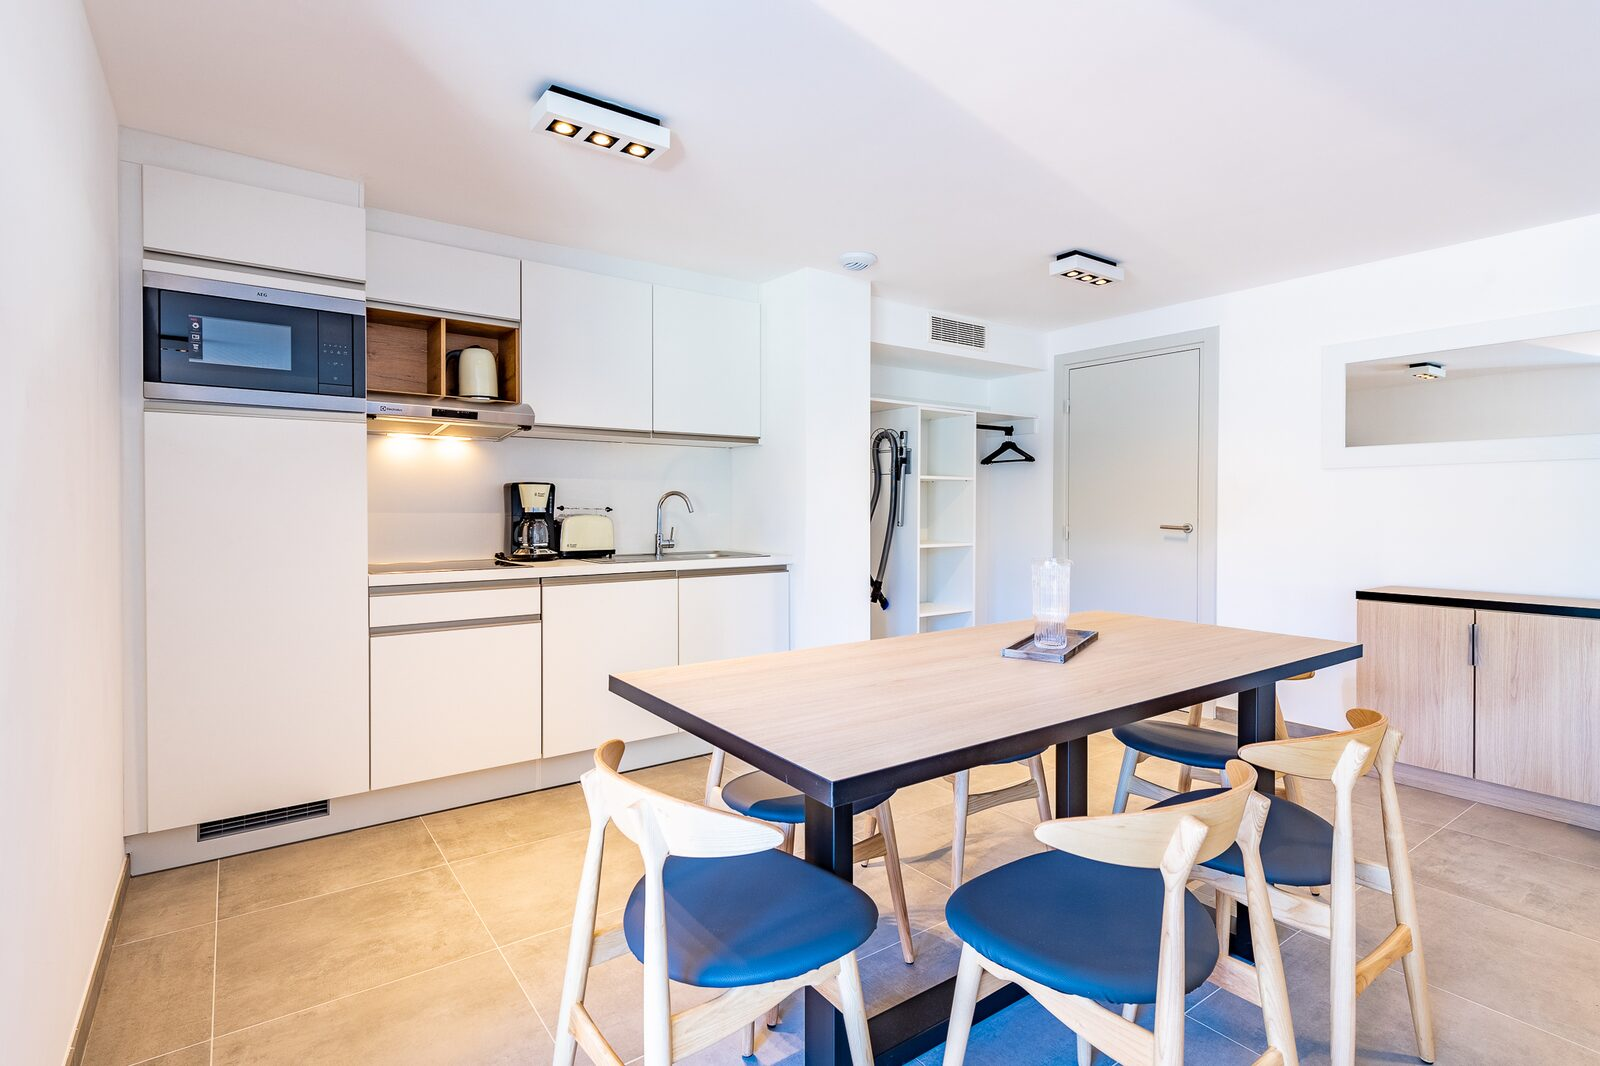 New premium suite for 6 people with 3 bedrooms